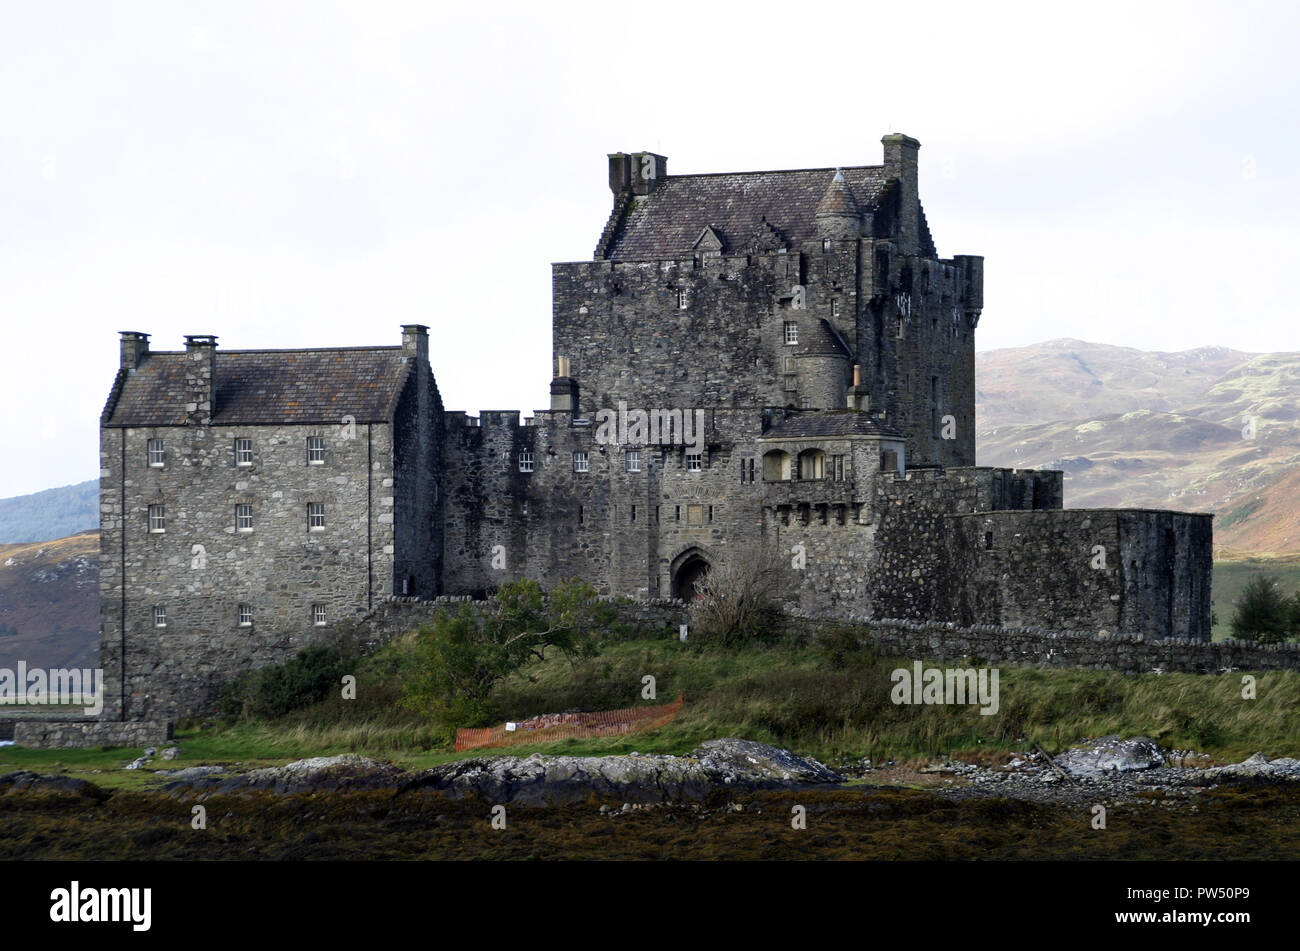 This is Eilean Donan castle which sits on a small island in Loch Duich, Scotland. It dates back to the 13th century, has been restored, is one of the most photographed, and visited, castles in Scotland. It has appeared in feature films a few times. - Stock Image